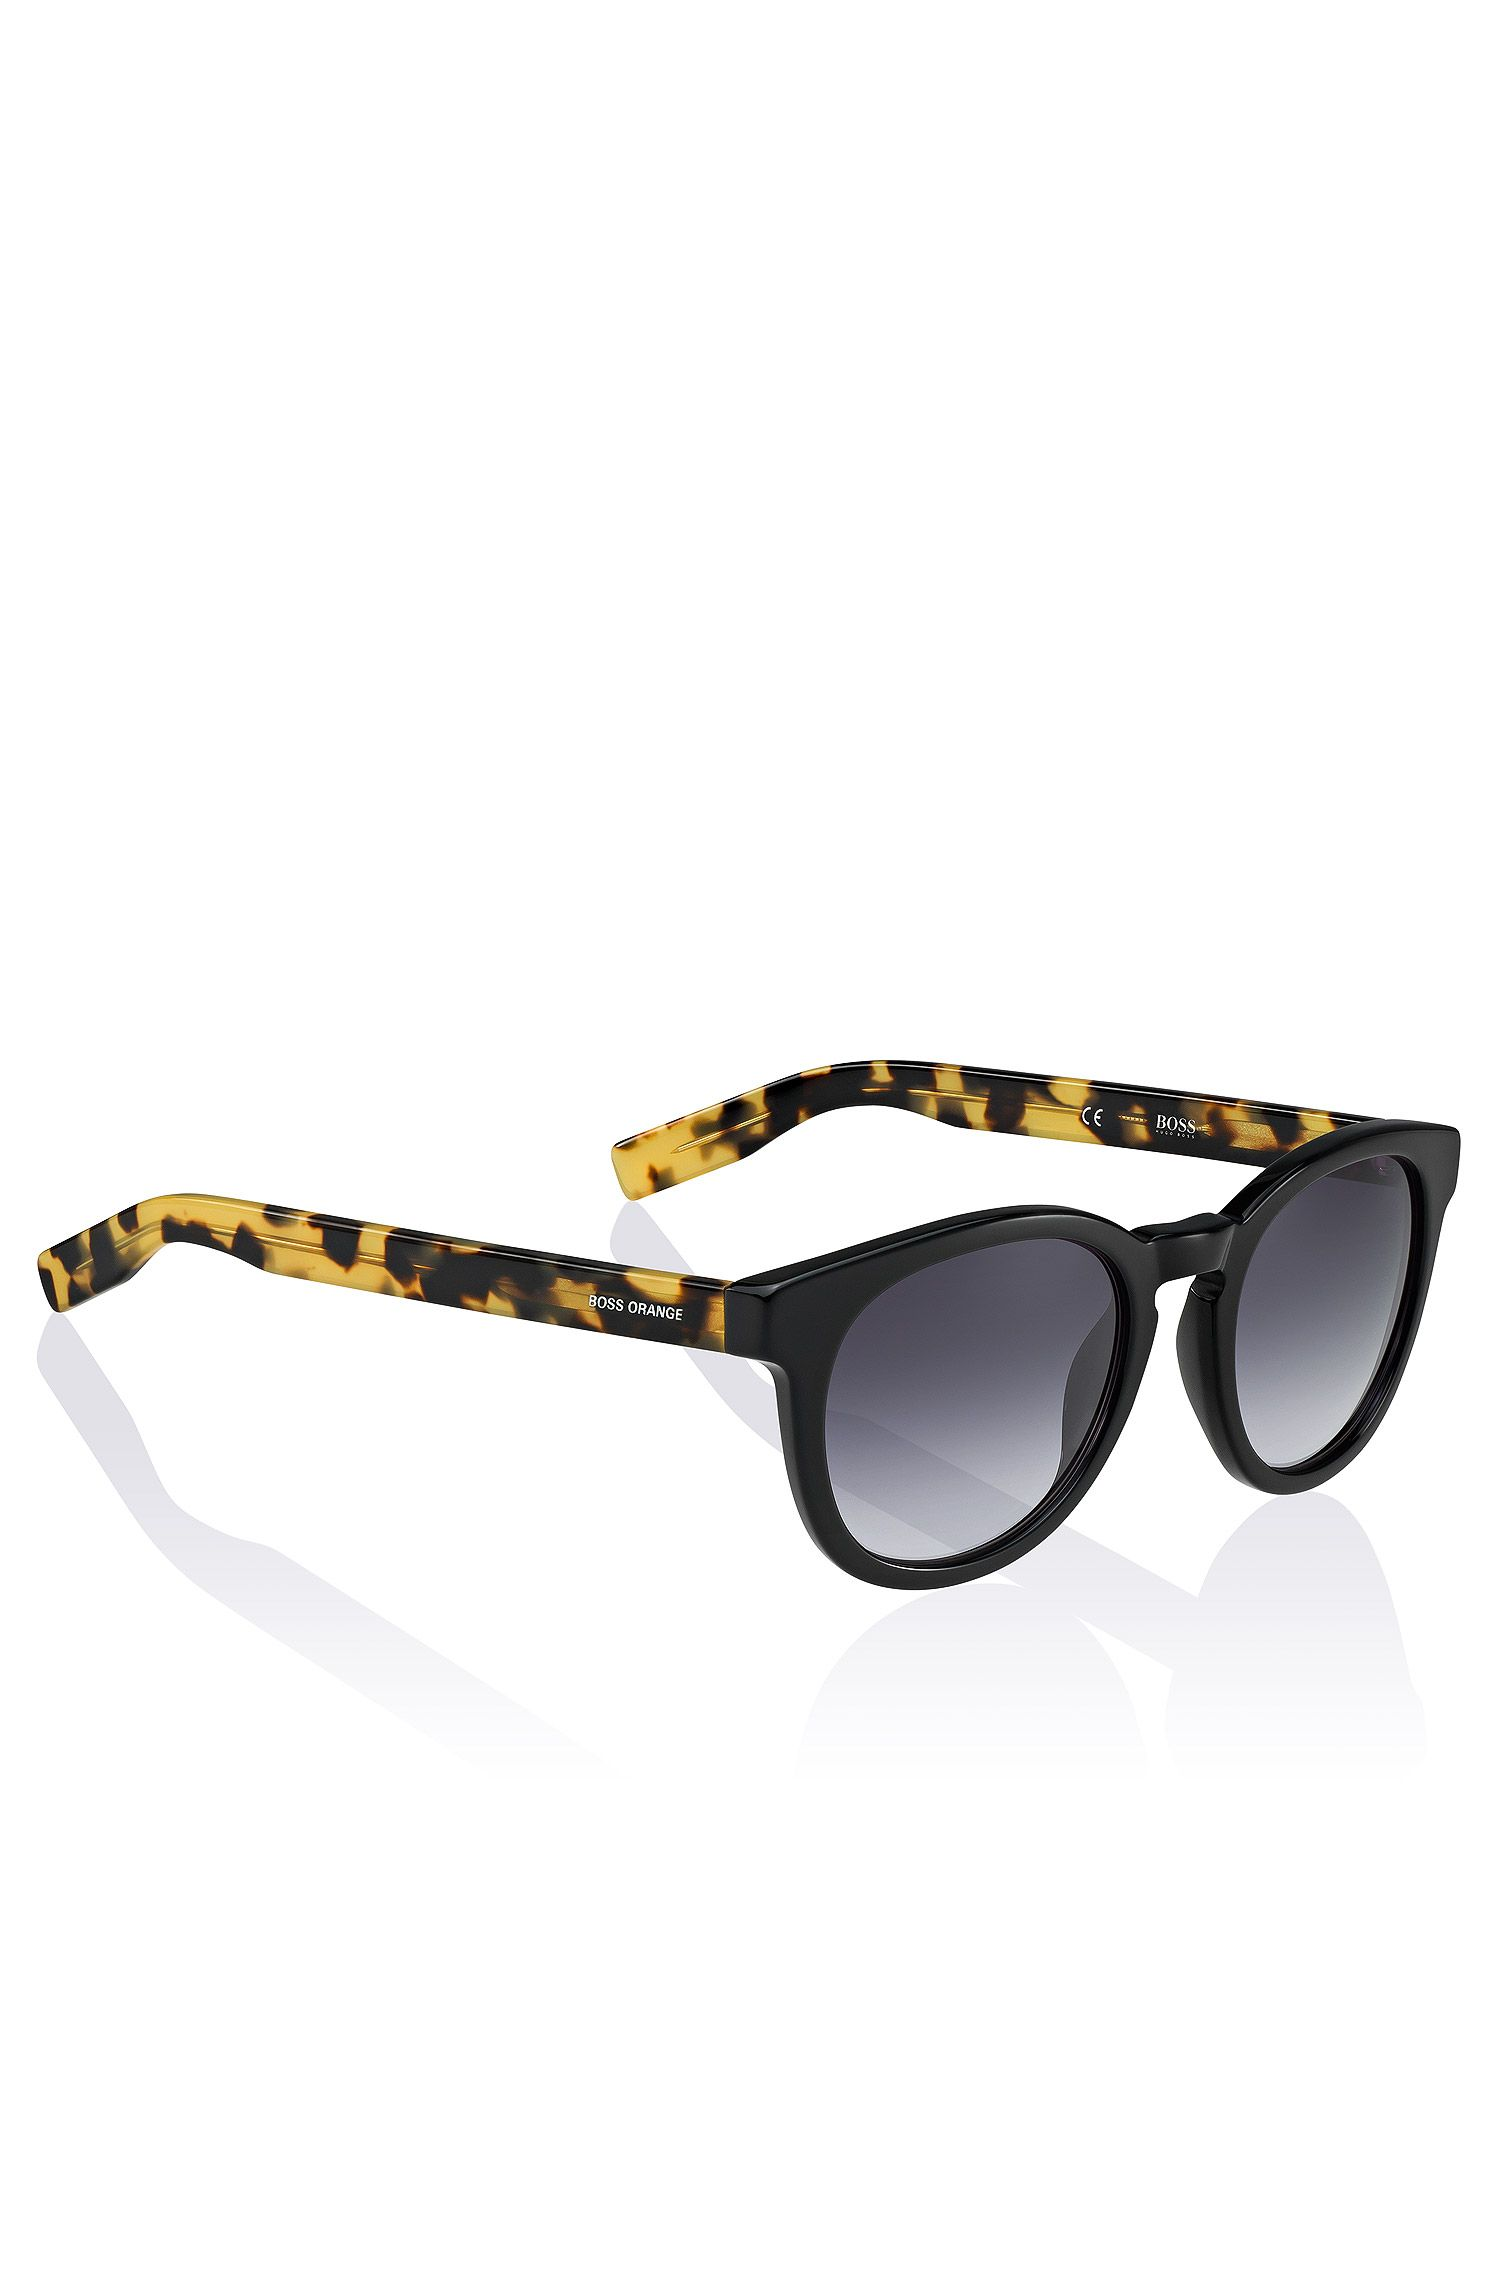 Sunglasses 'BO 0194'